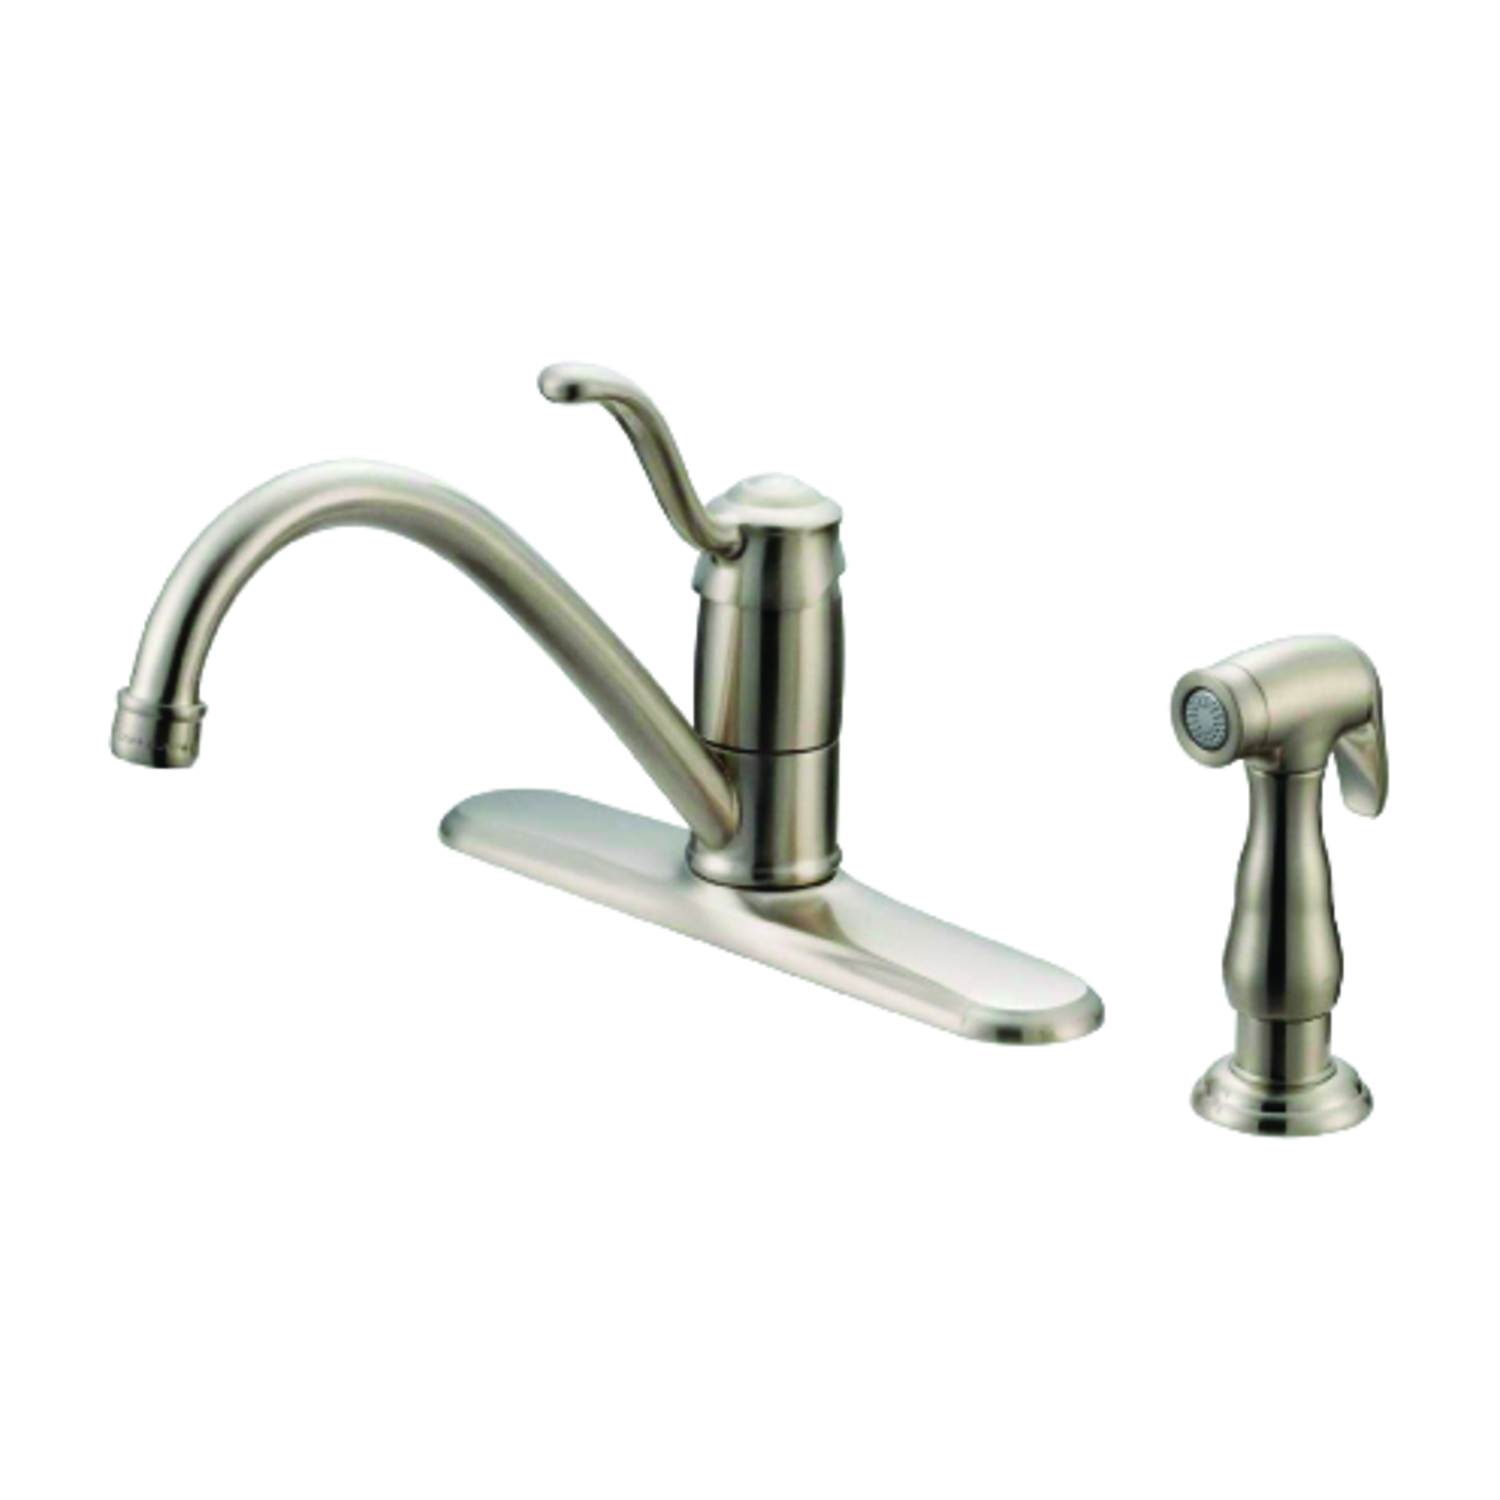 OakBrook  Tucana  Single Handle  One Handle  Brushed Nickel  Kitchen Faucet  Side Sprayer Included